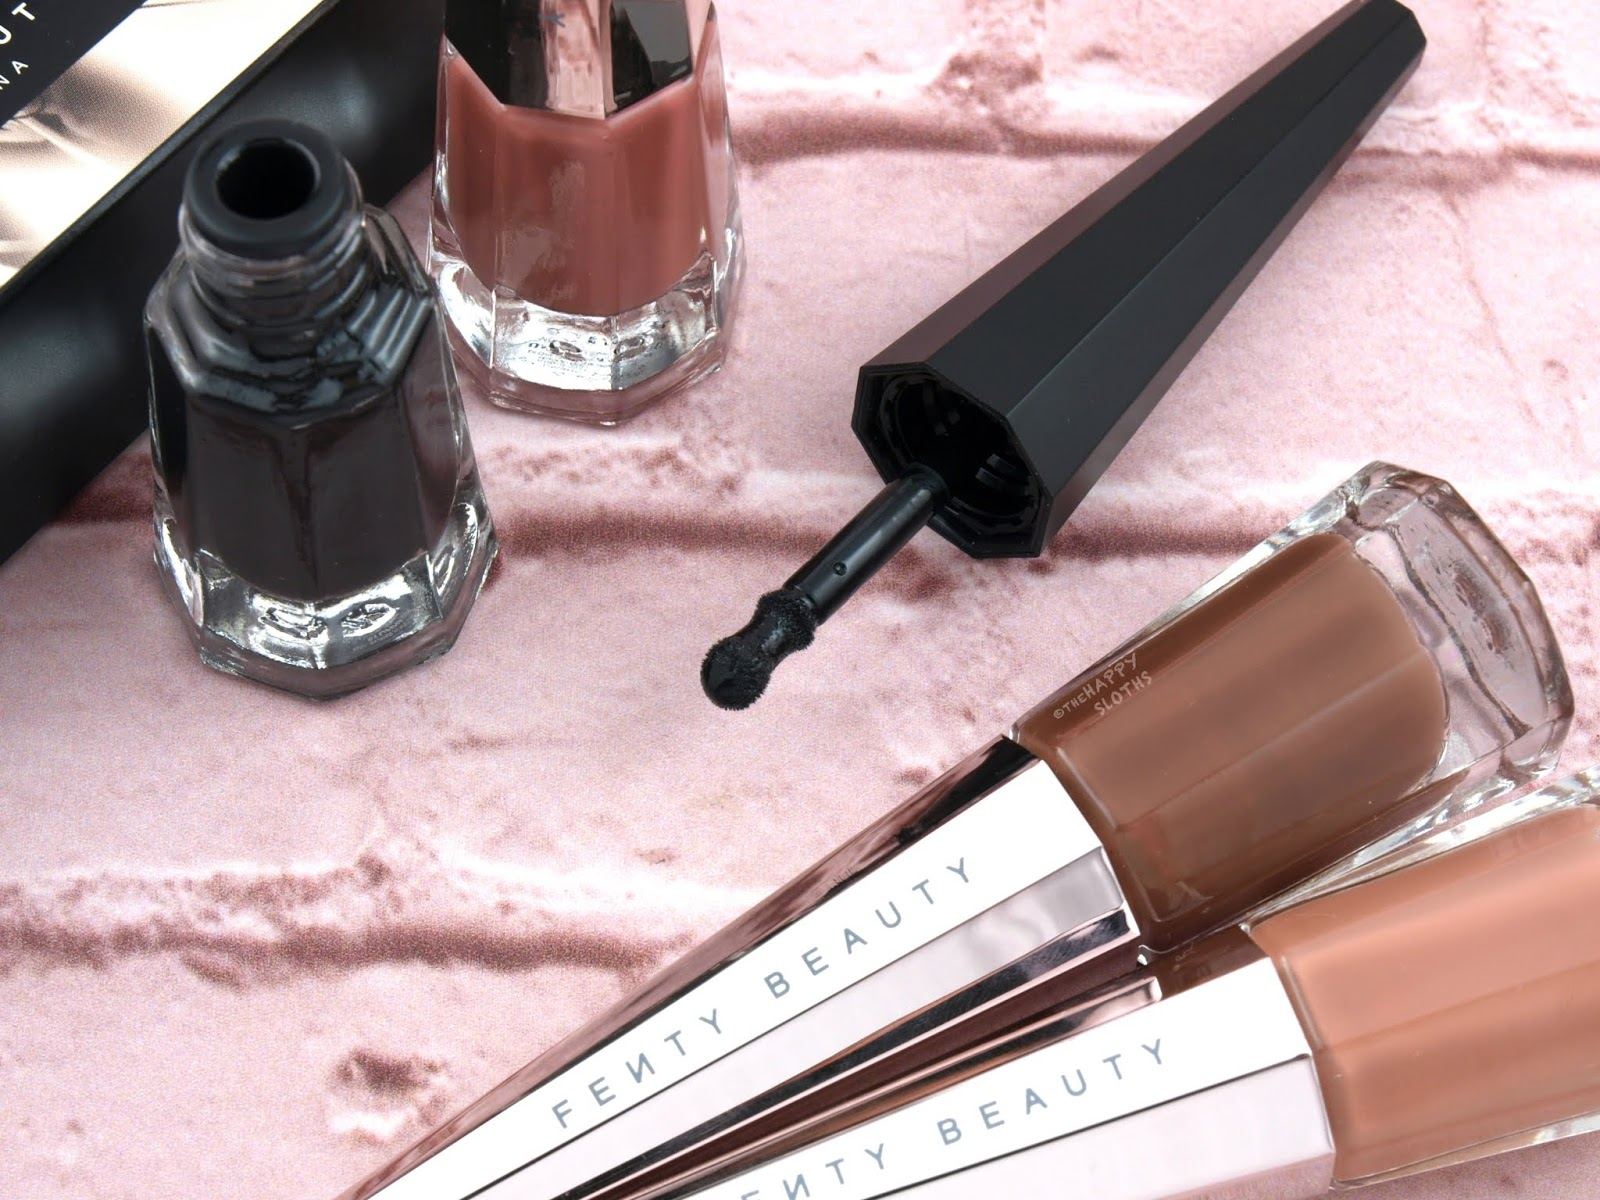 Fenty Beauty by Rihanna | *NEW SHADES* Stunna Lip Paint: Review and Swatches